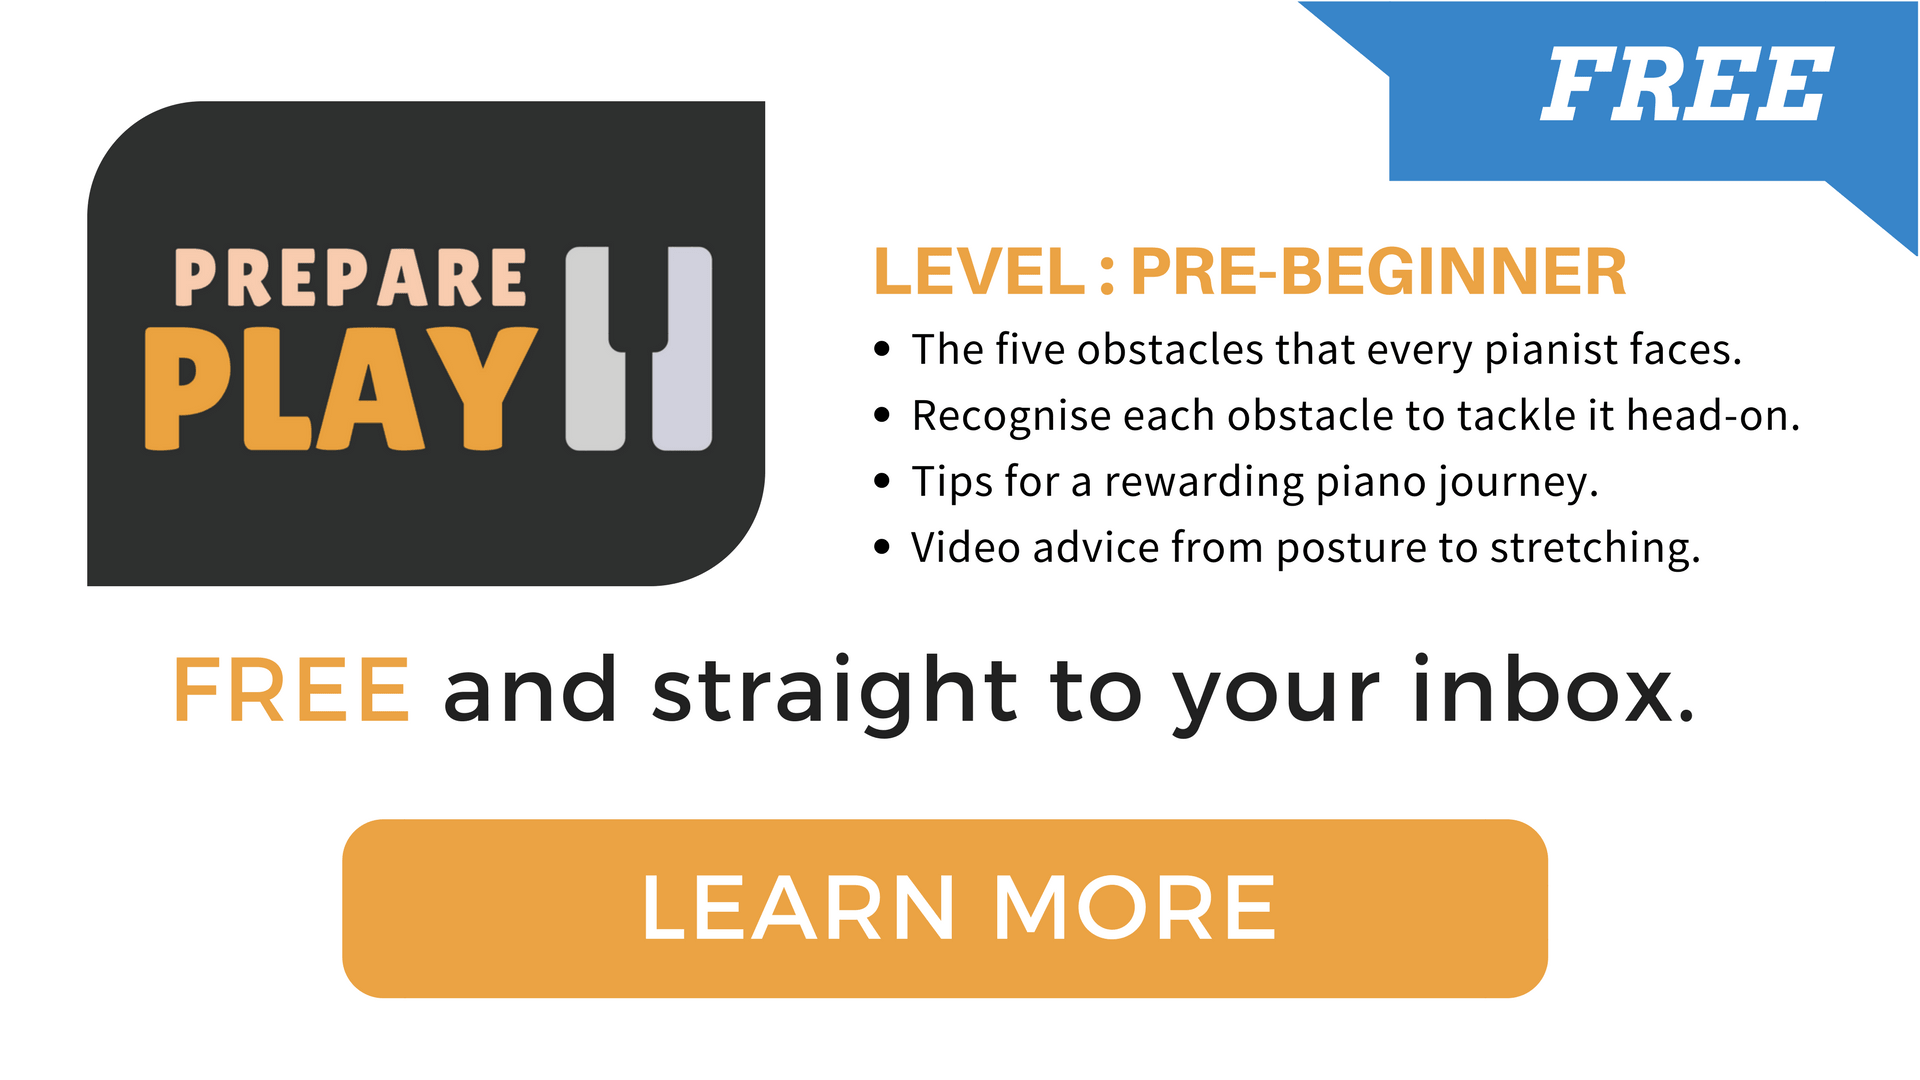 Prepare To Play free course Benefits! Learn more.